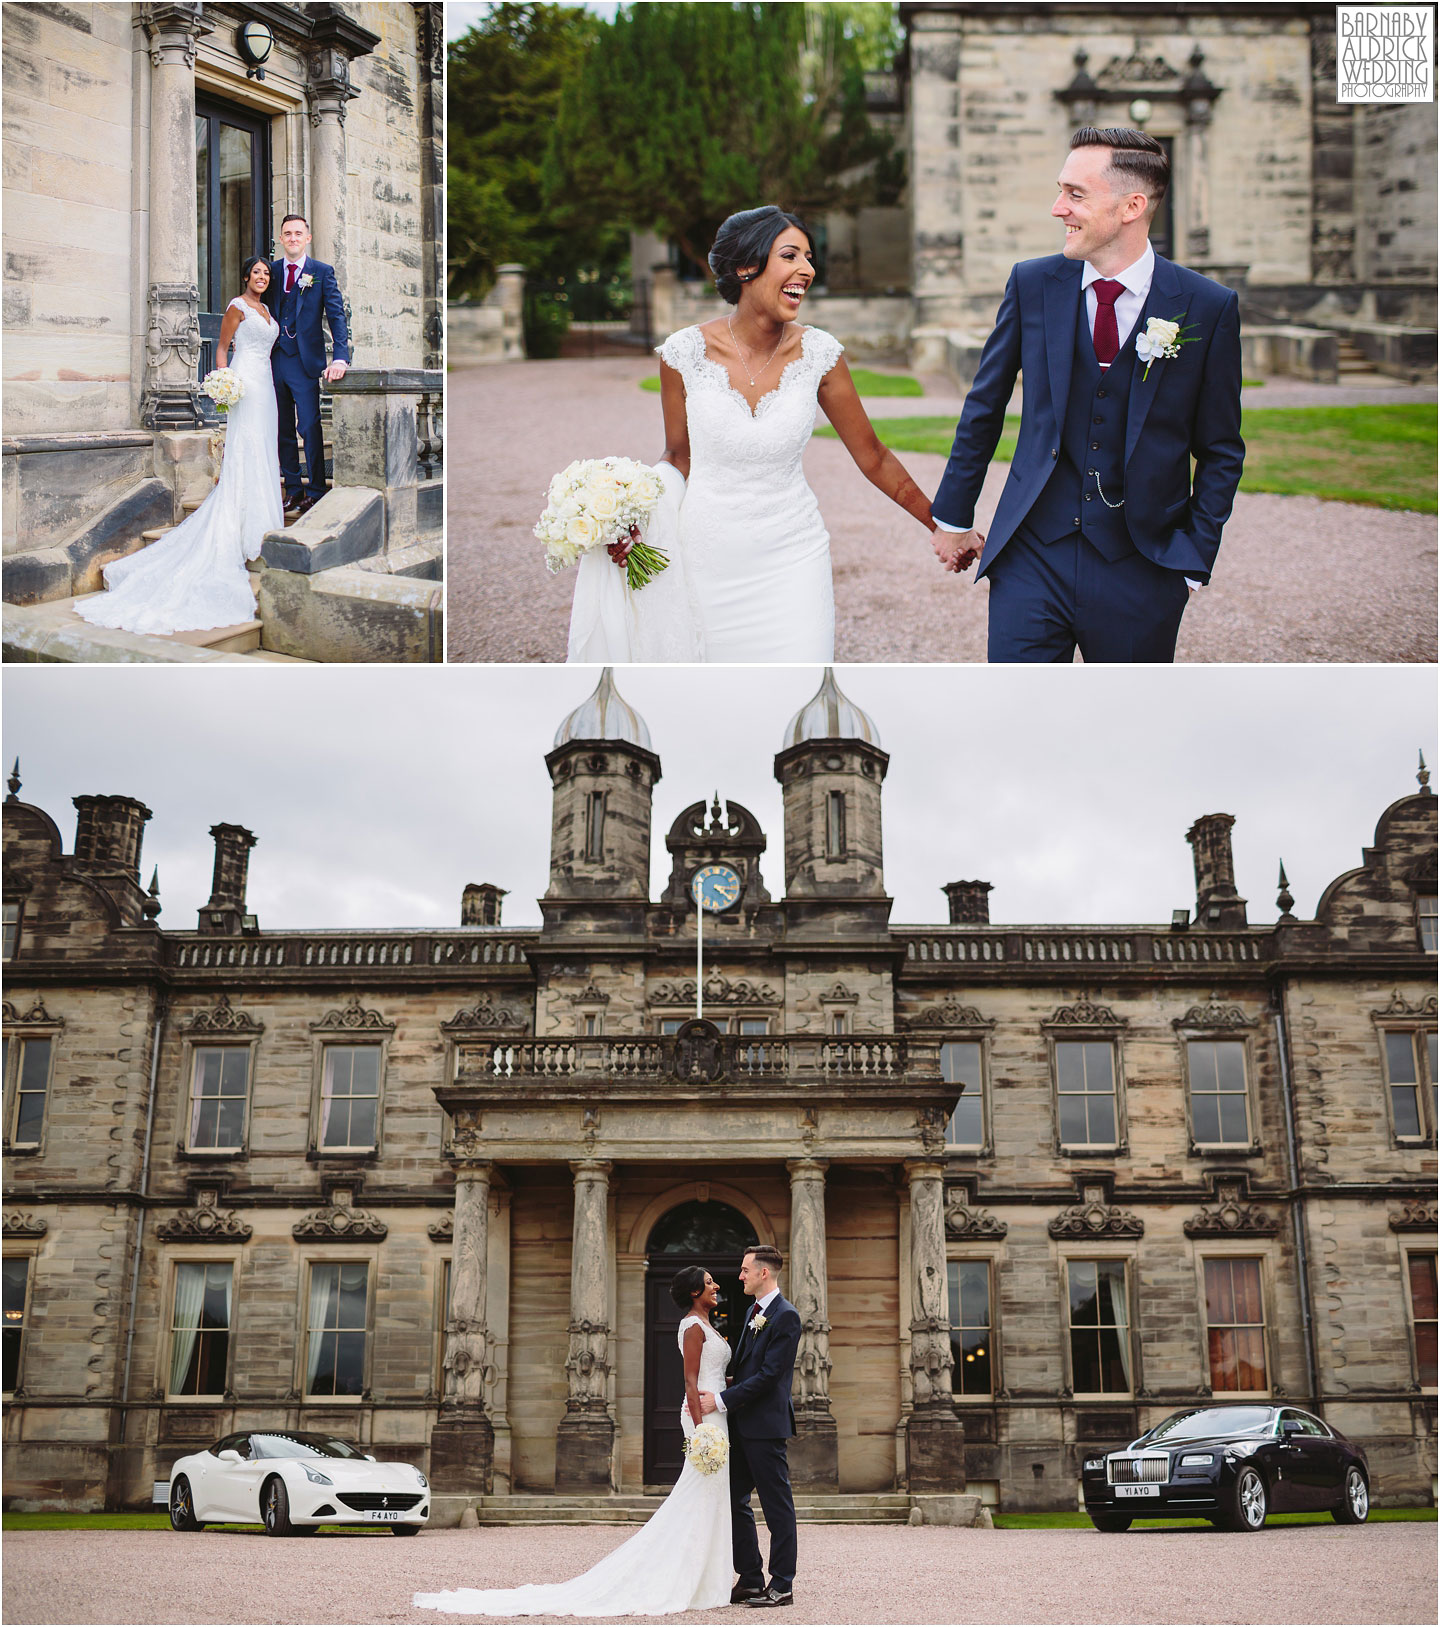 Anglo Indian couple portraits at a wedding at Sandon Hall, Sandon Hall Wedding photographs in Staffordshire, Sandon Hall Stafford wedding photos, Midlands exclusive country house wedding venue